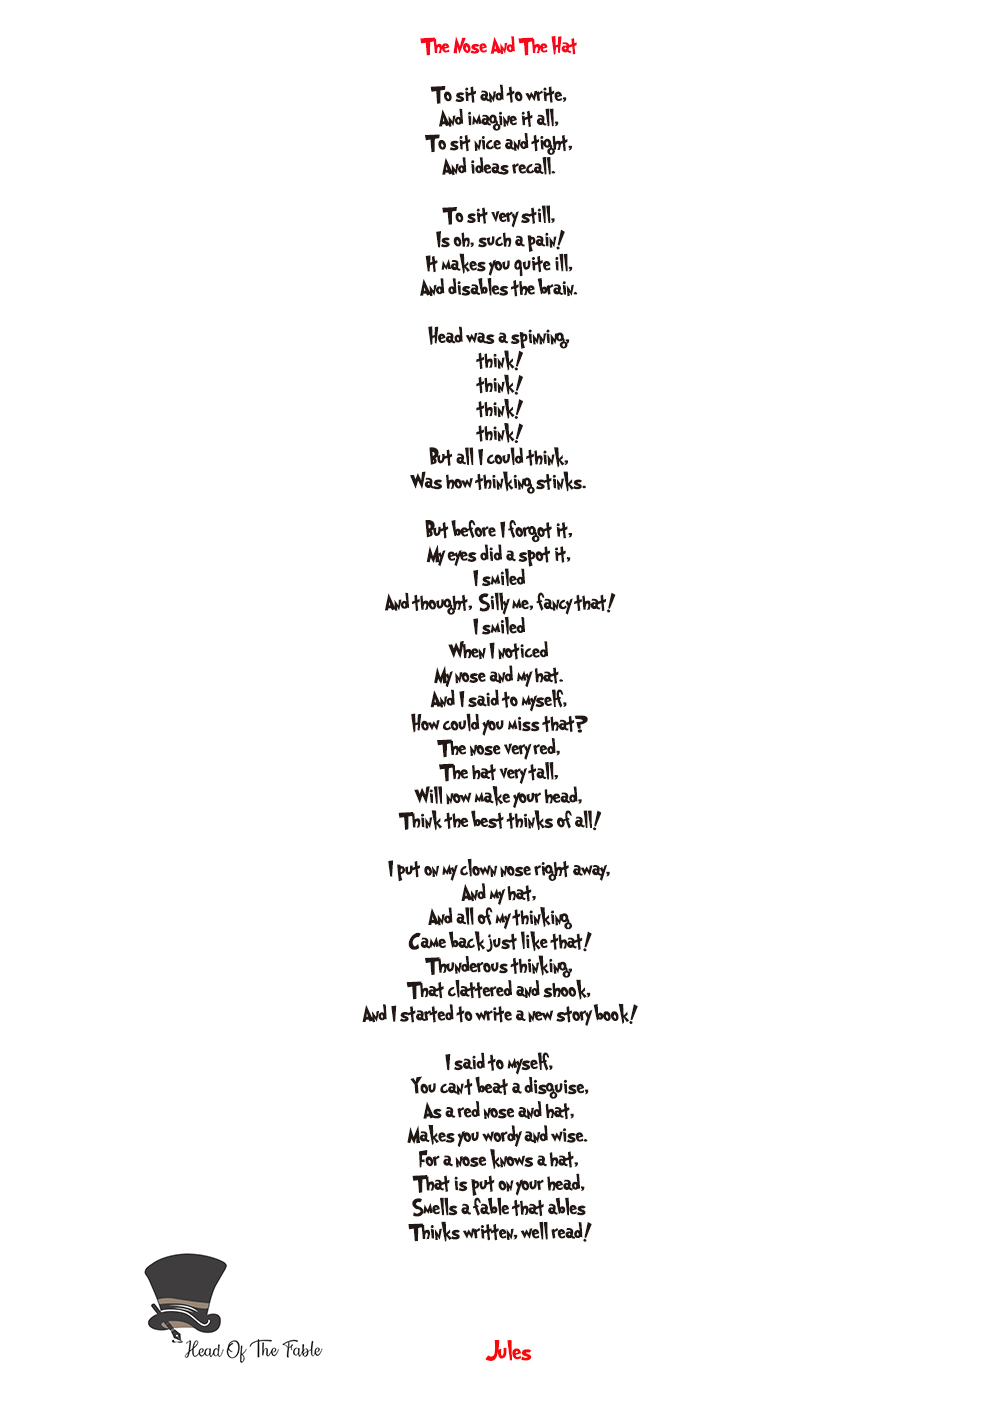 Dr. Seuss style poem by Jules Smith